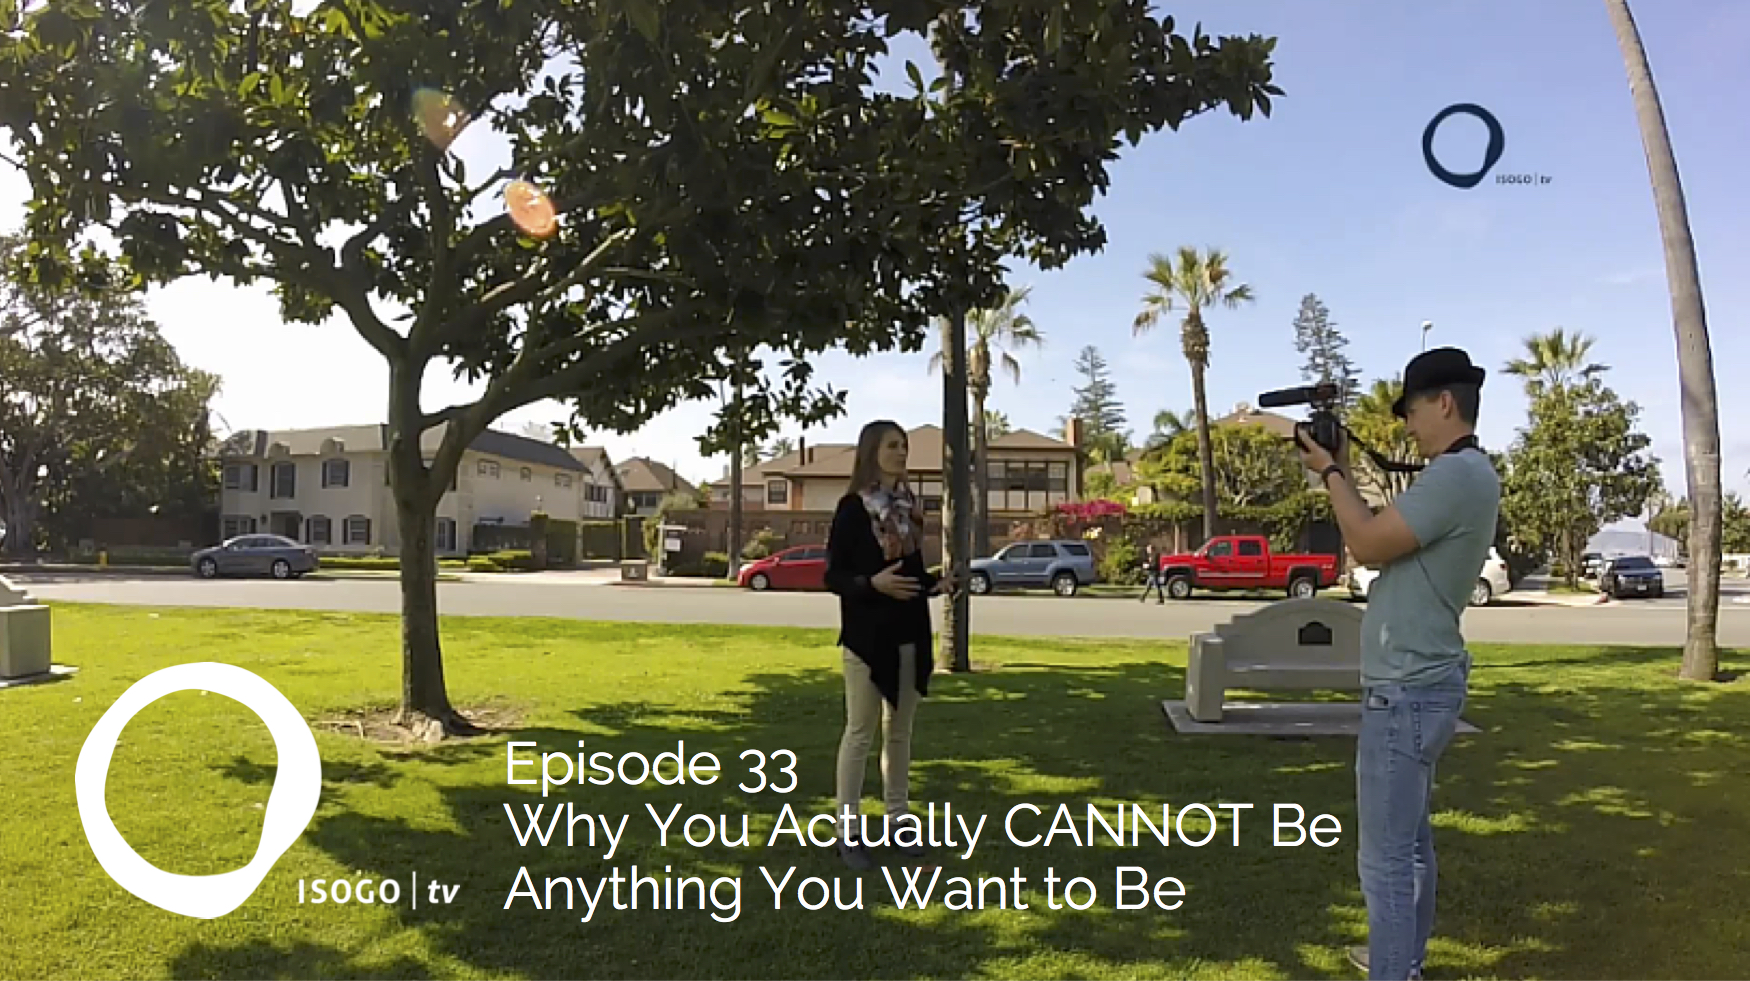 Why You Actually CANNOT Be Anything You Want to Be | Isogo TV Episode 33